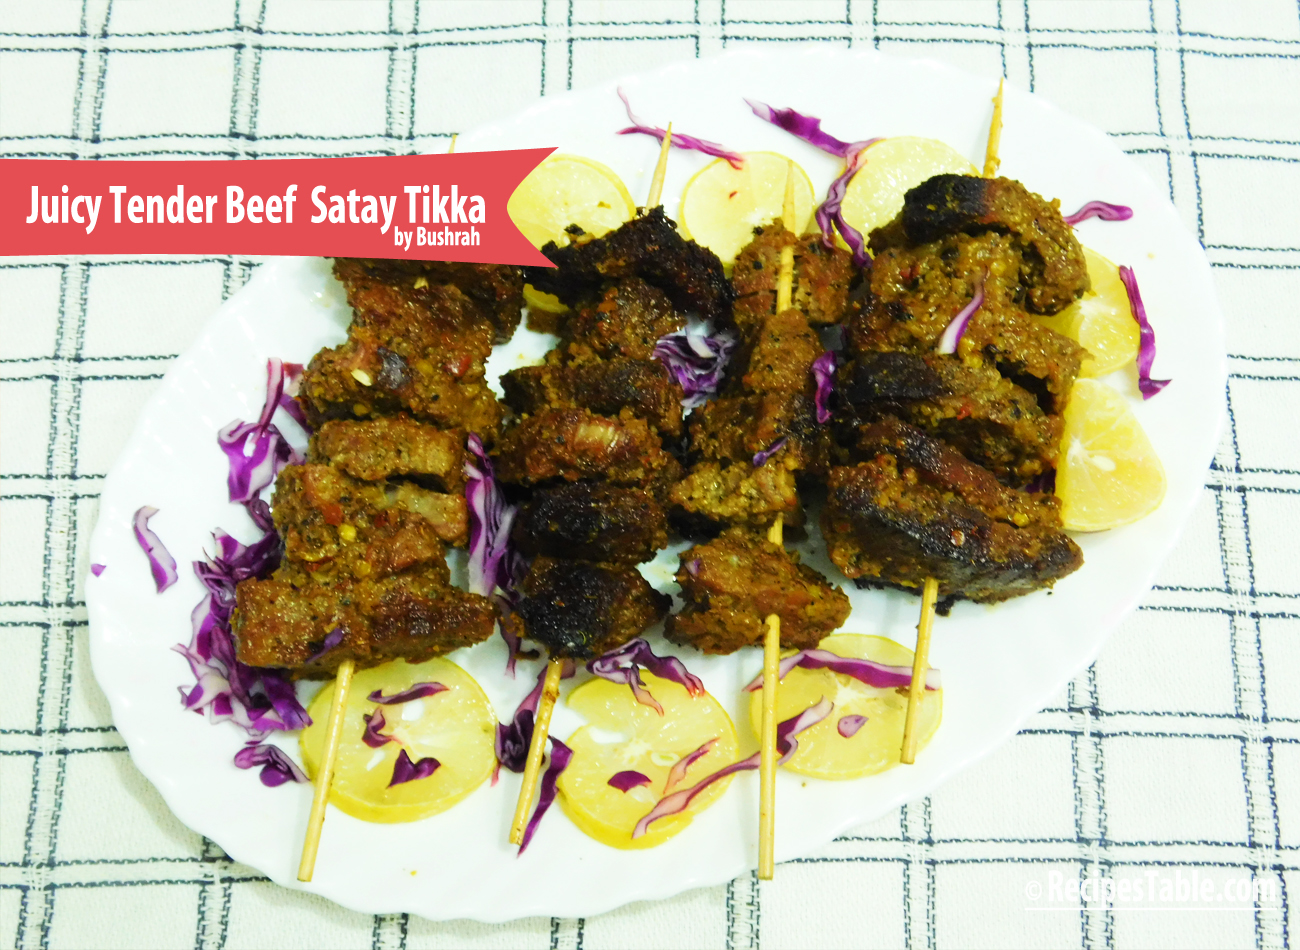 Juicy and Tender Beef Satay Tikka